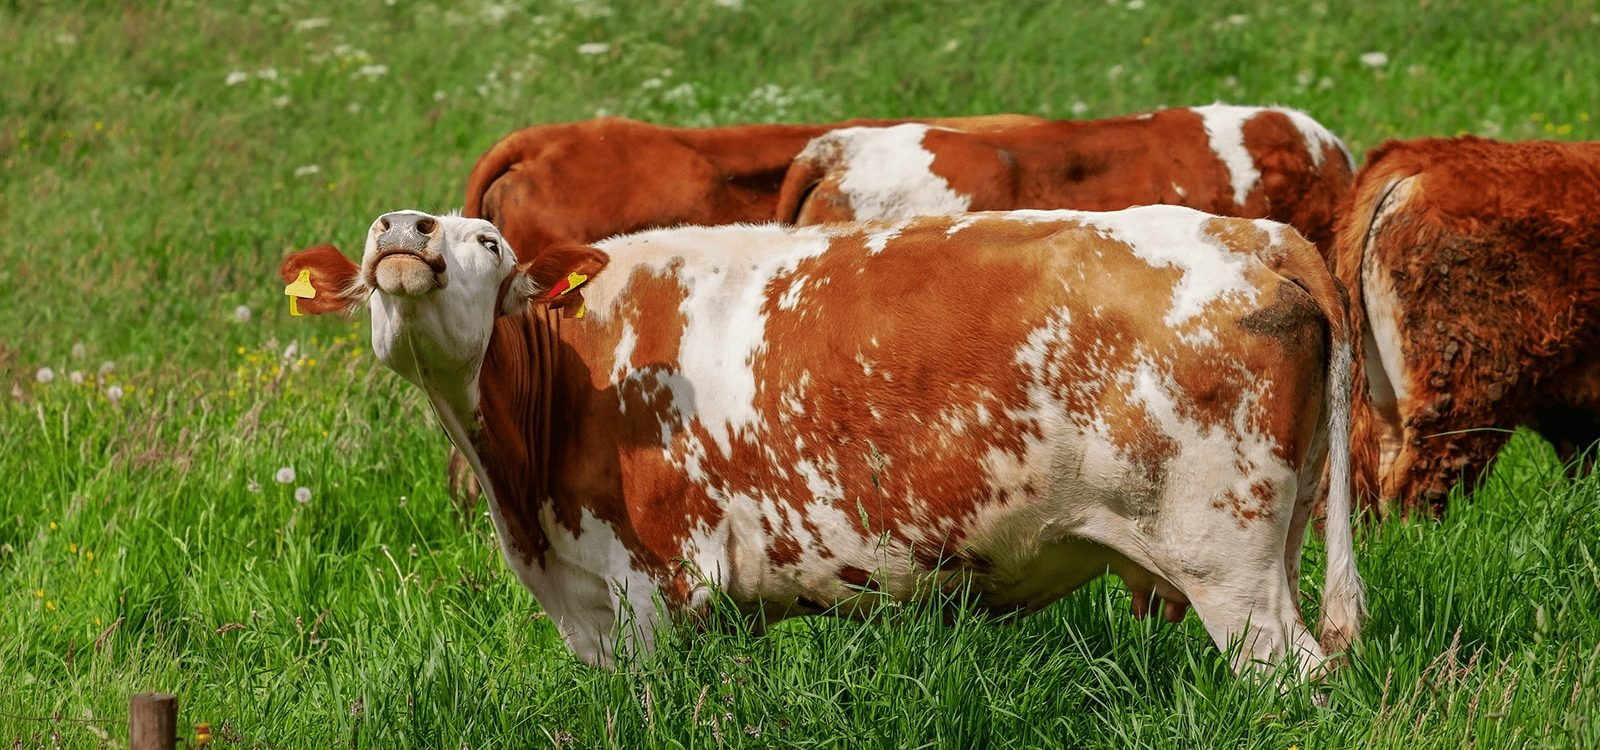 Bloat_in_cattle_practices_to_prevent_the_disease